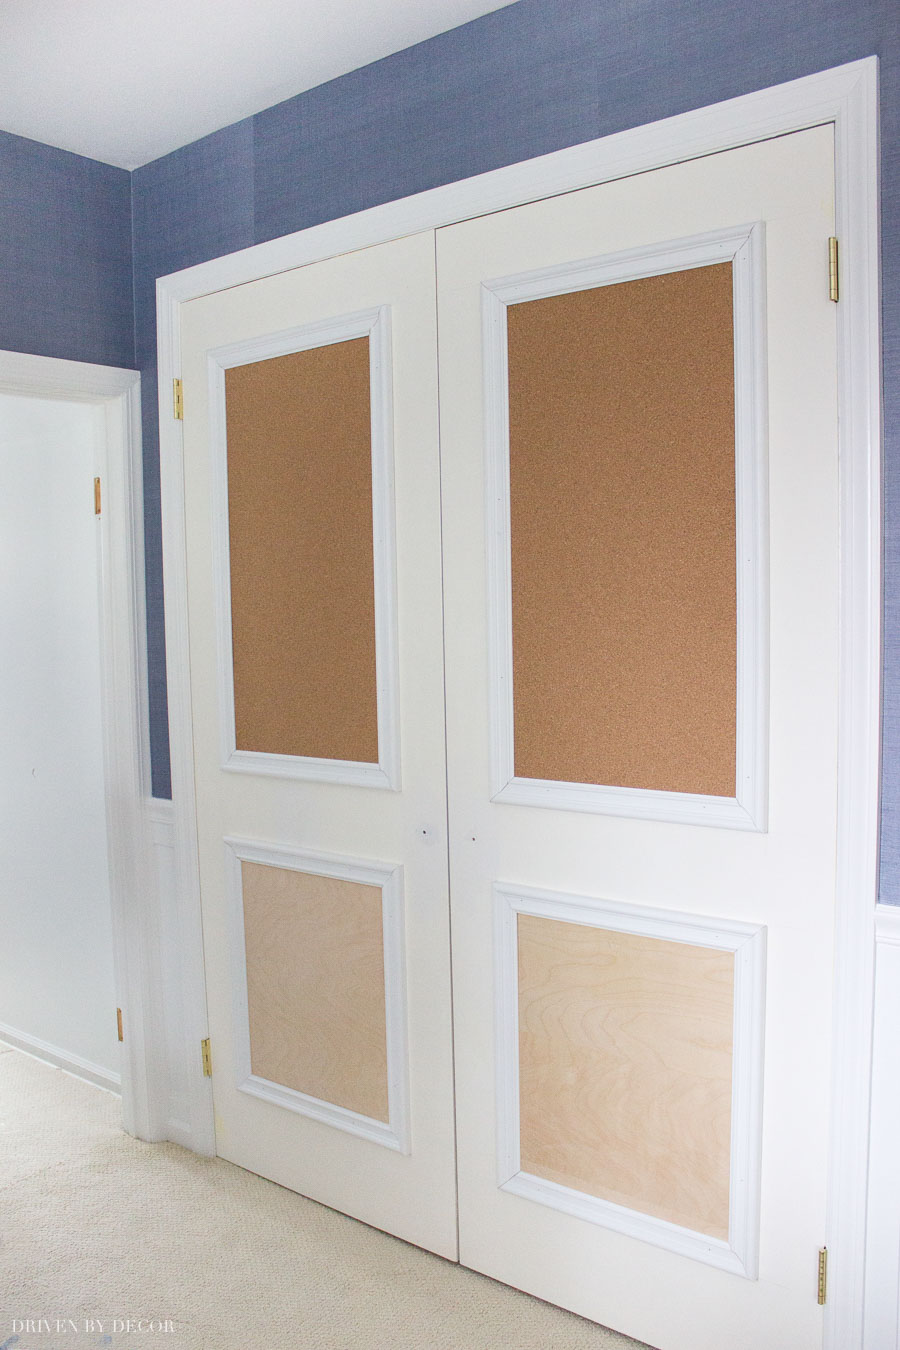 Closet Door Ideas: 3 Unique Ways to Dress Up Bedroom Closet Doors ...